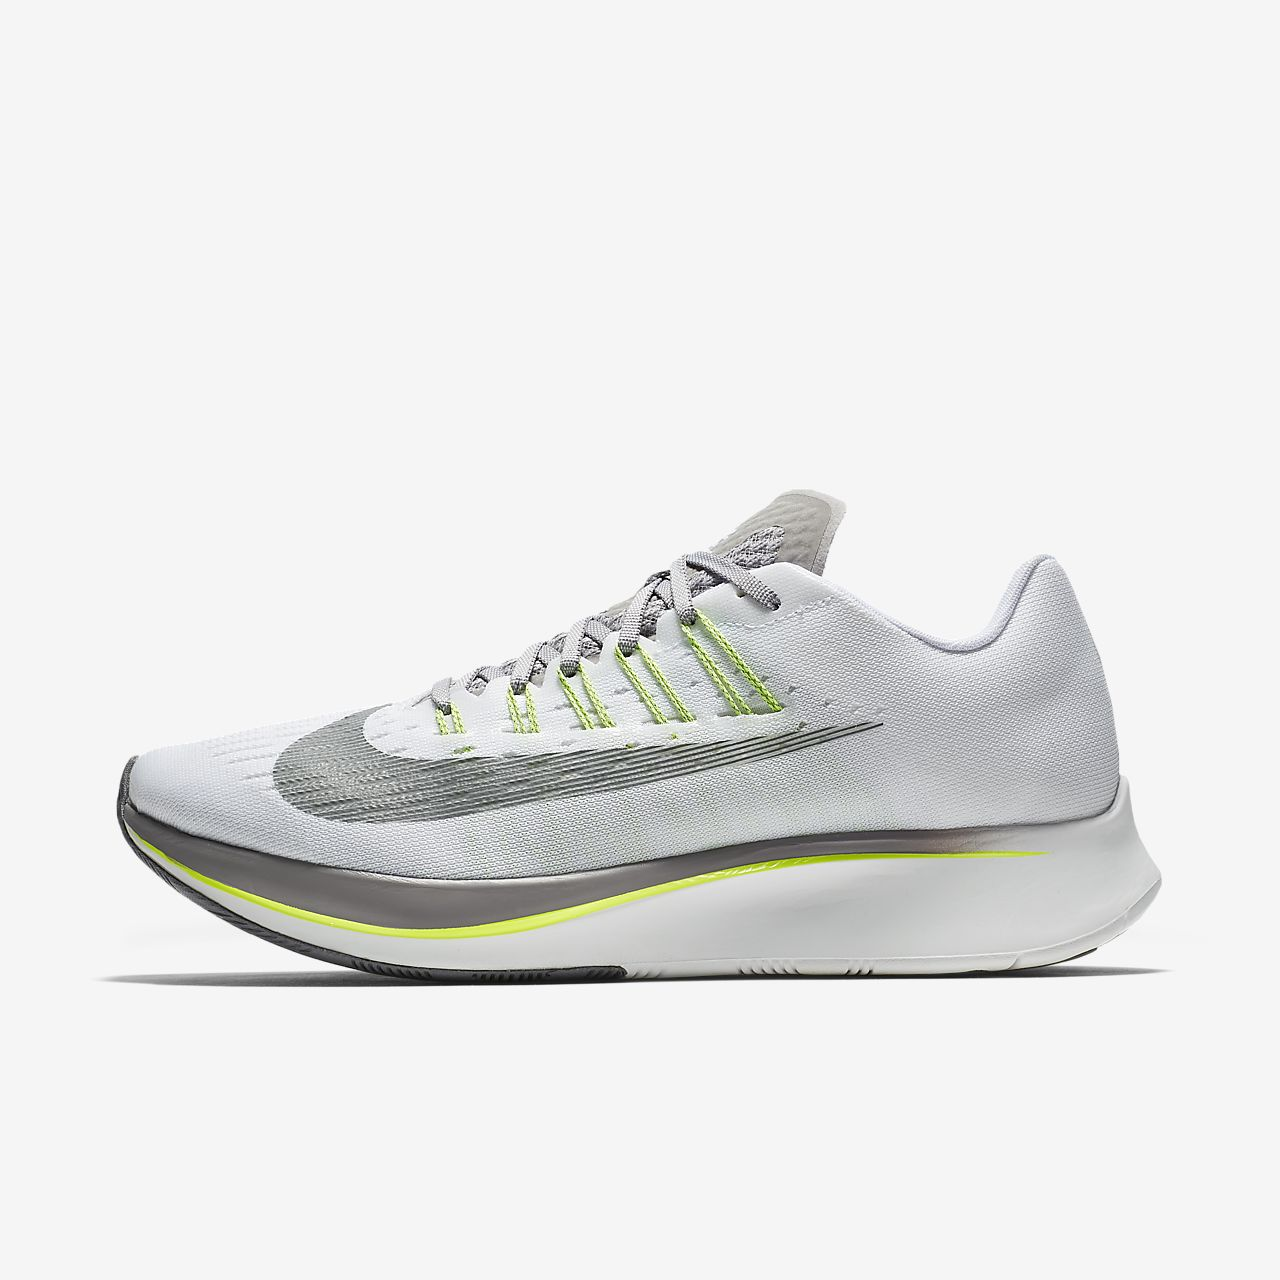 18feed9afb30 Nike Zoom Fly Men s Running Shoe. Nike.com